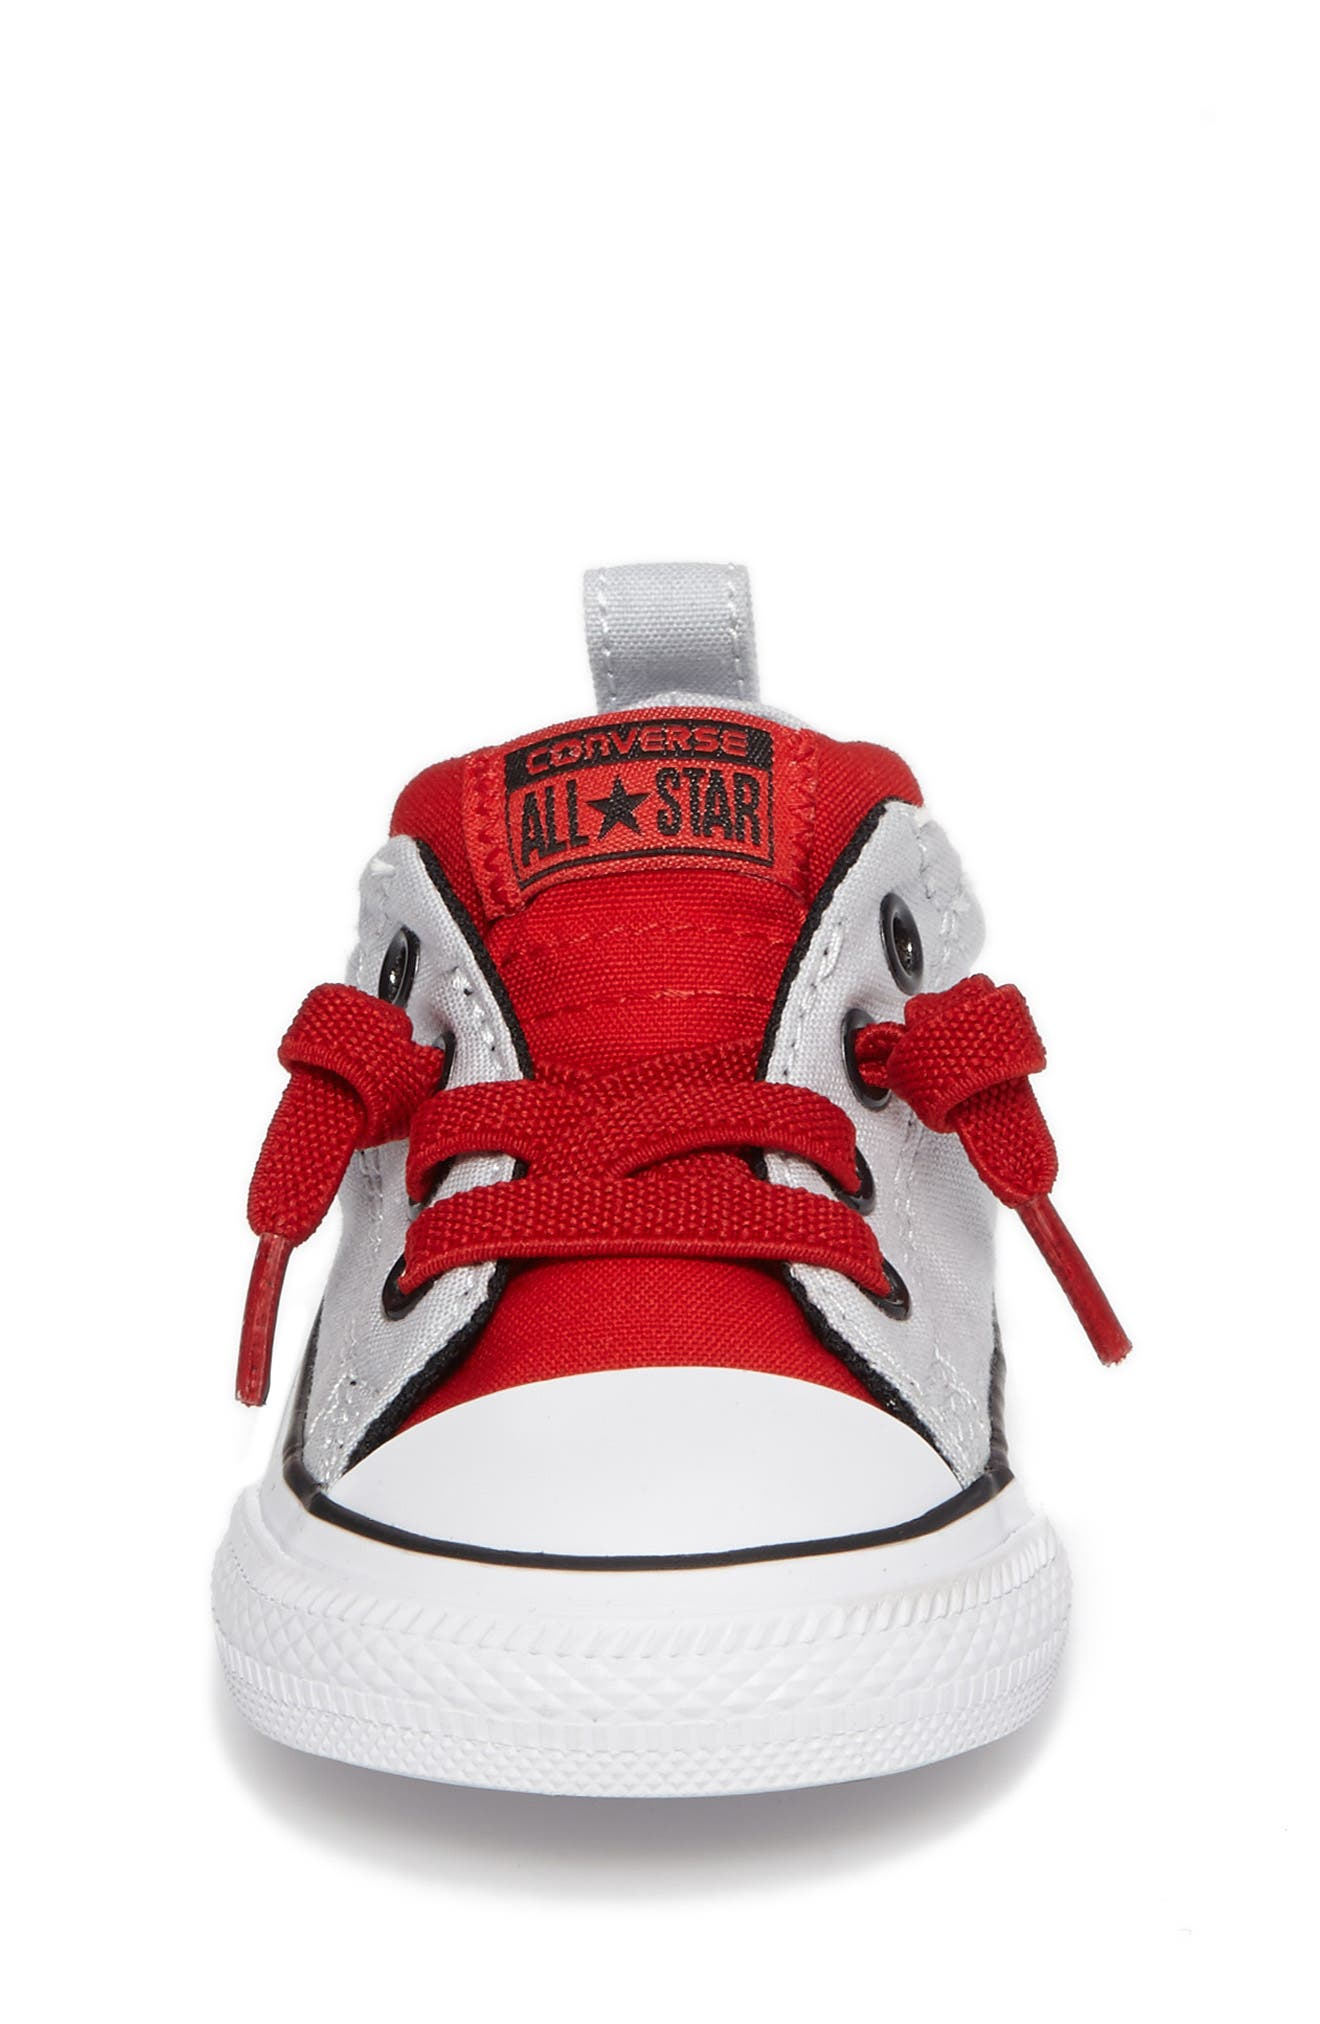 Alternate Image 4  - Converse All Star® Street Slip Low Top Sneaker (Baby, Walker, Toddler, Little Kid & Big Kid)